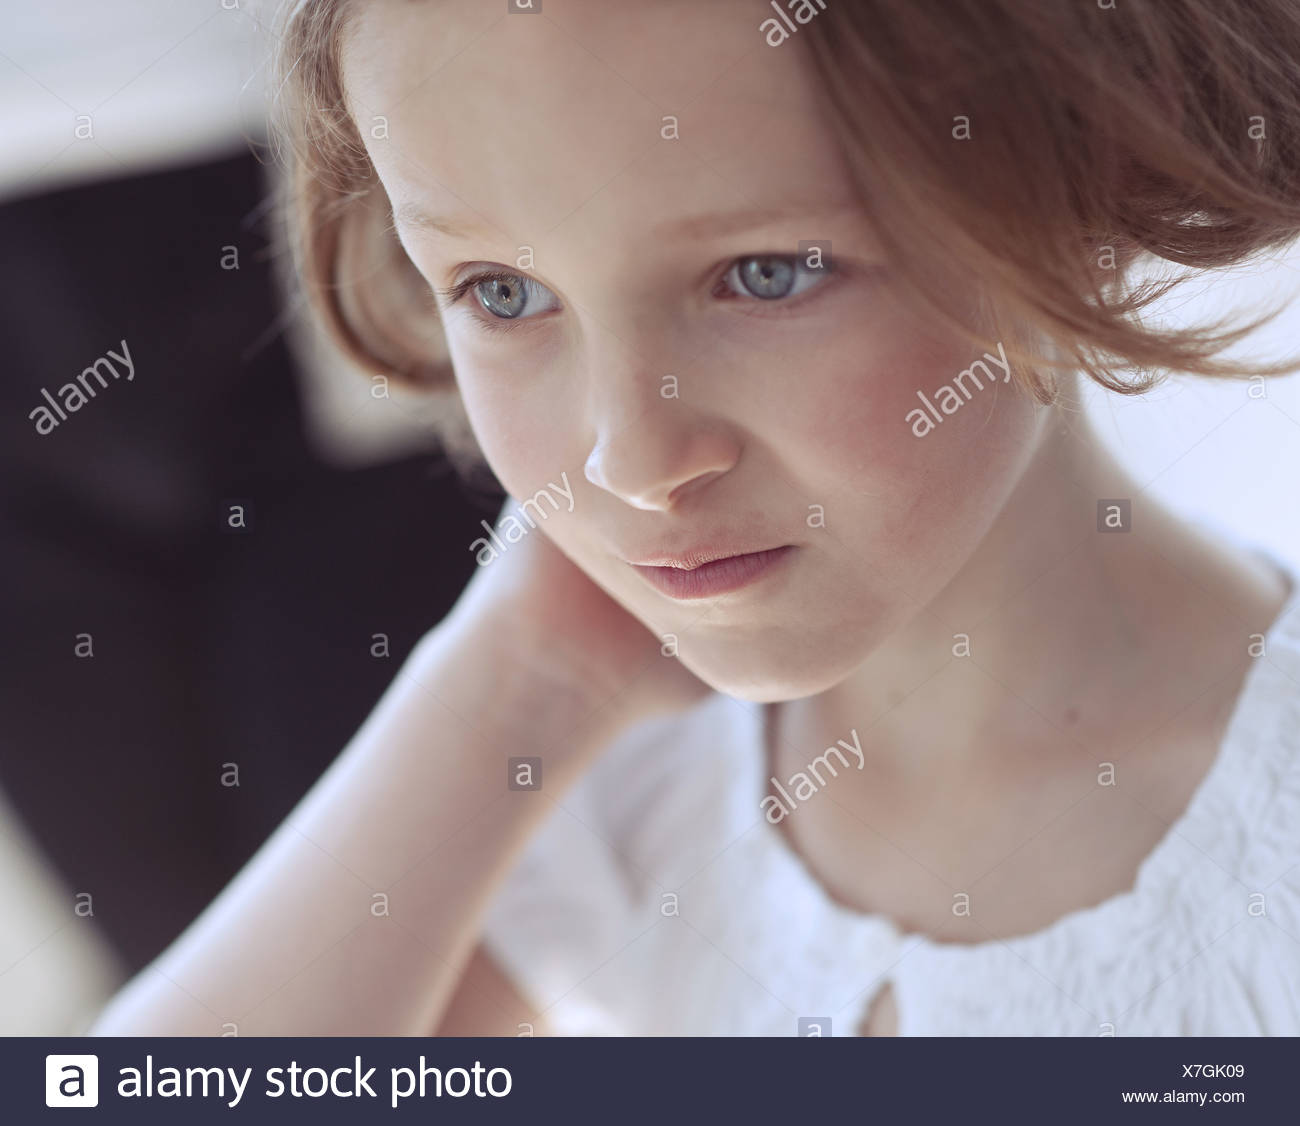 Close-up portrait of young girl looking away from camera - Stock Image